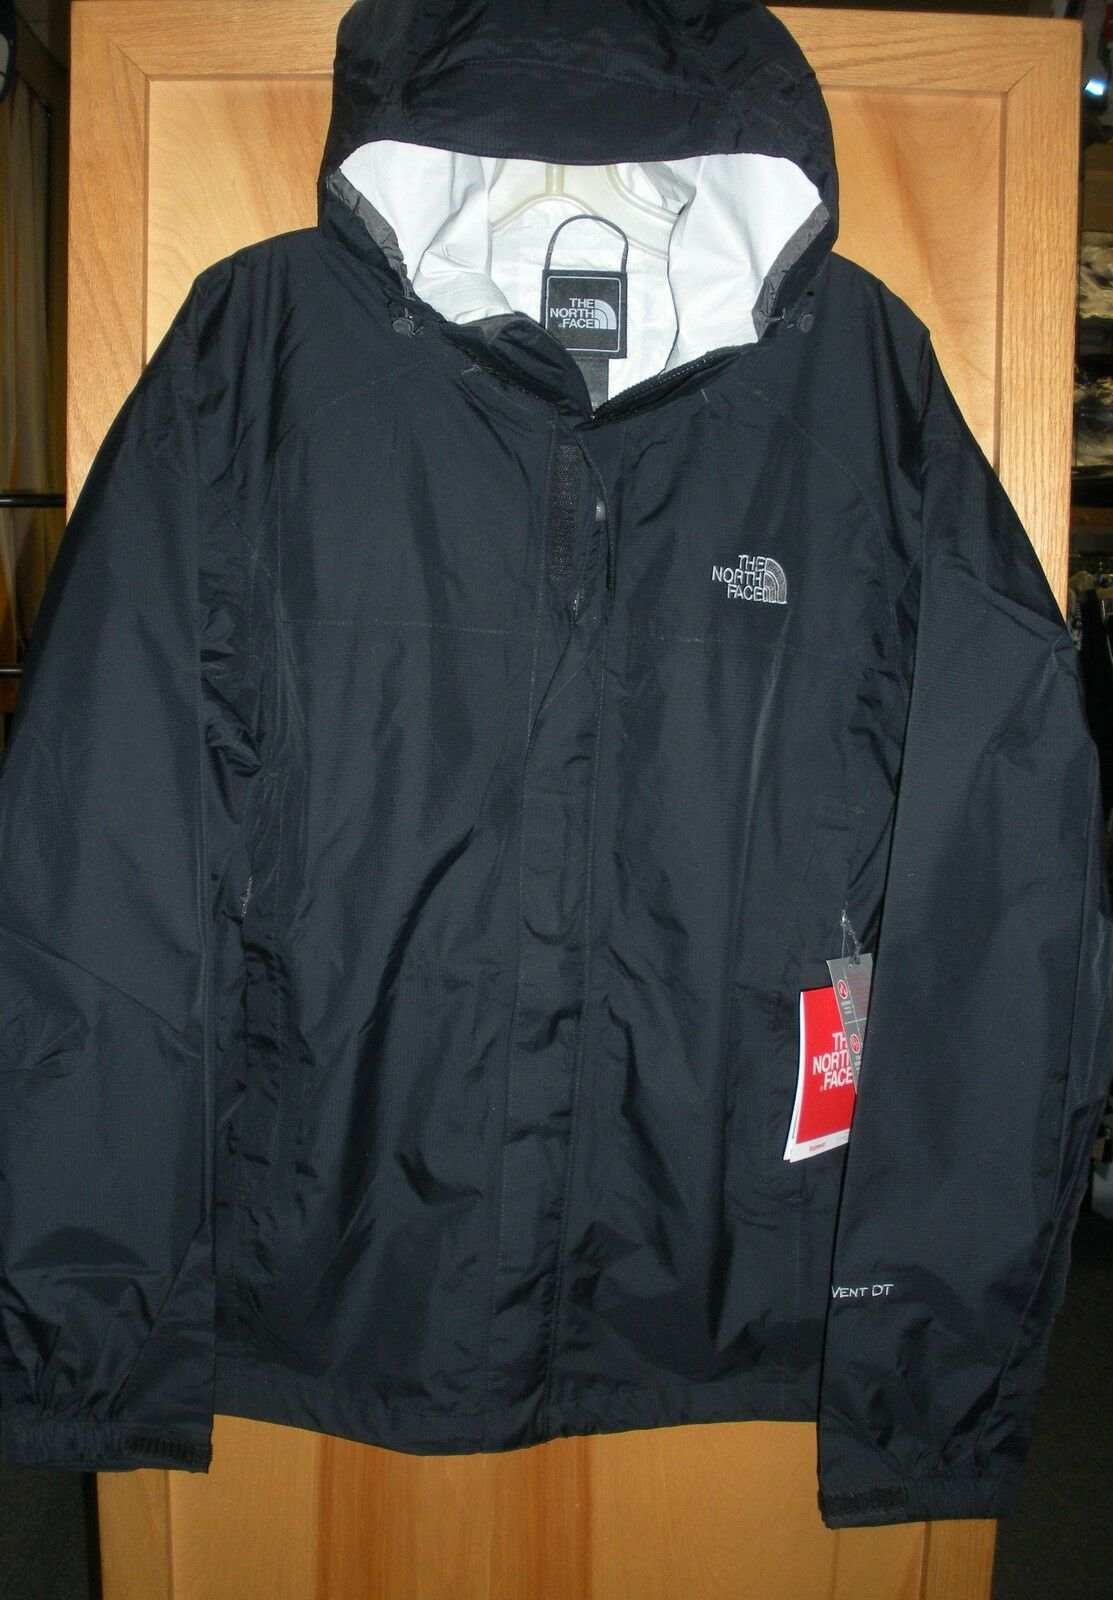 cd091b368 THE NORTH FACE MENS VENTURE 2 WATERPROOF JACKET -#A8AR- BLACK- S,M L,XL,XXL